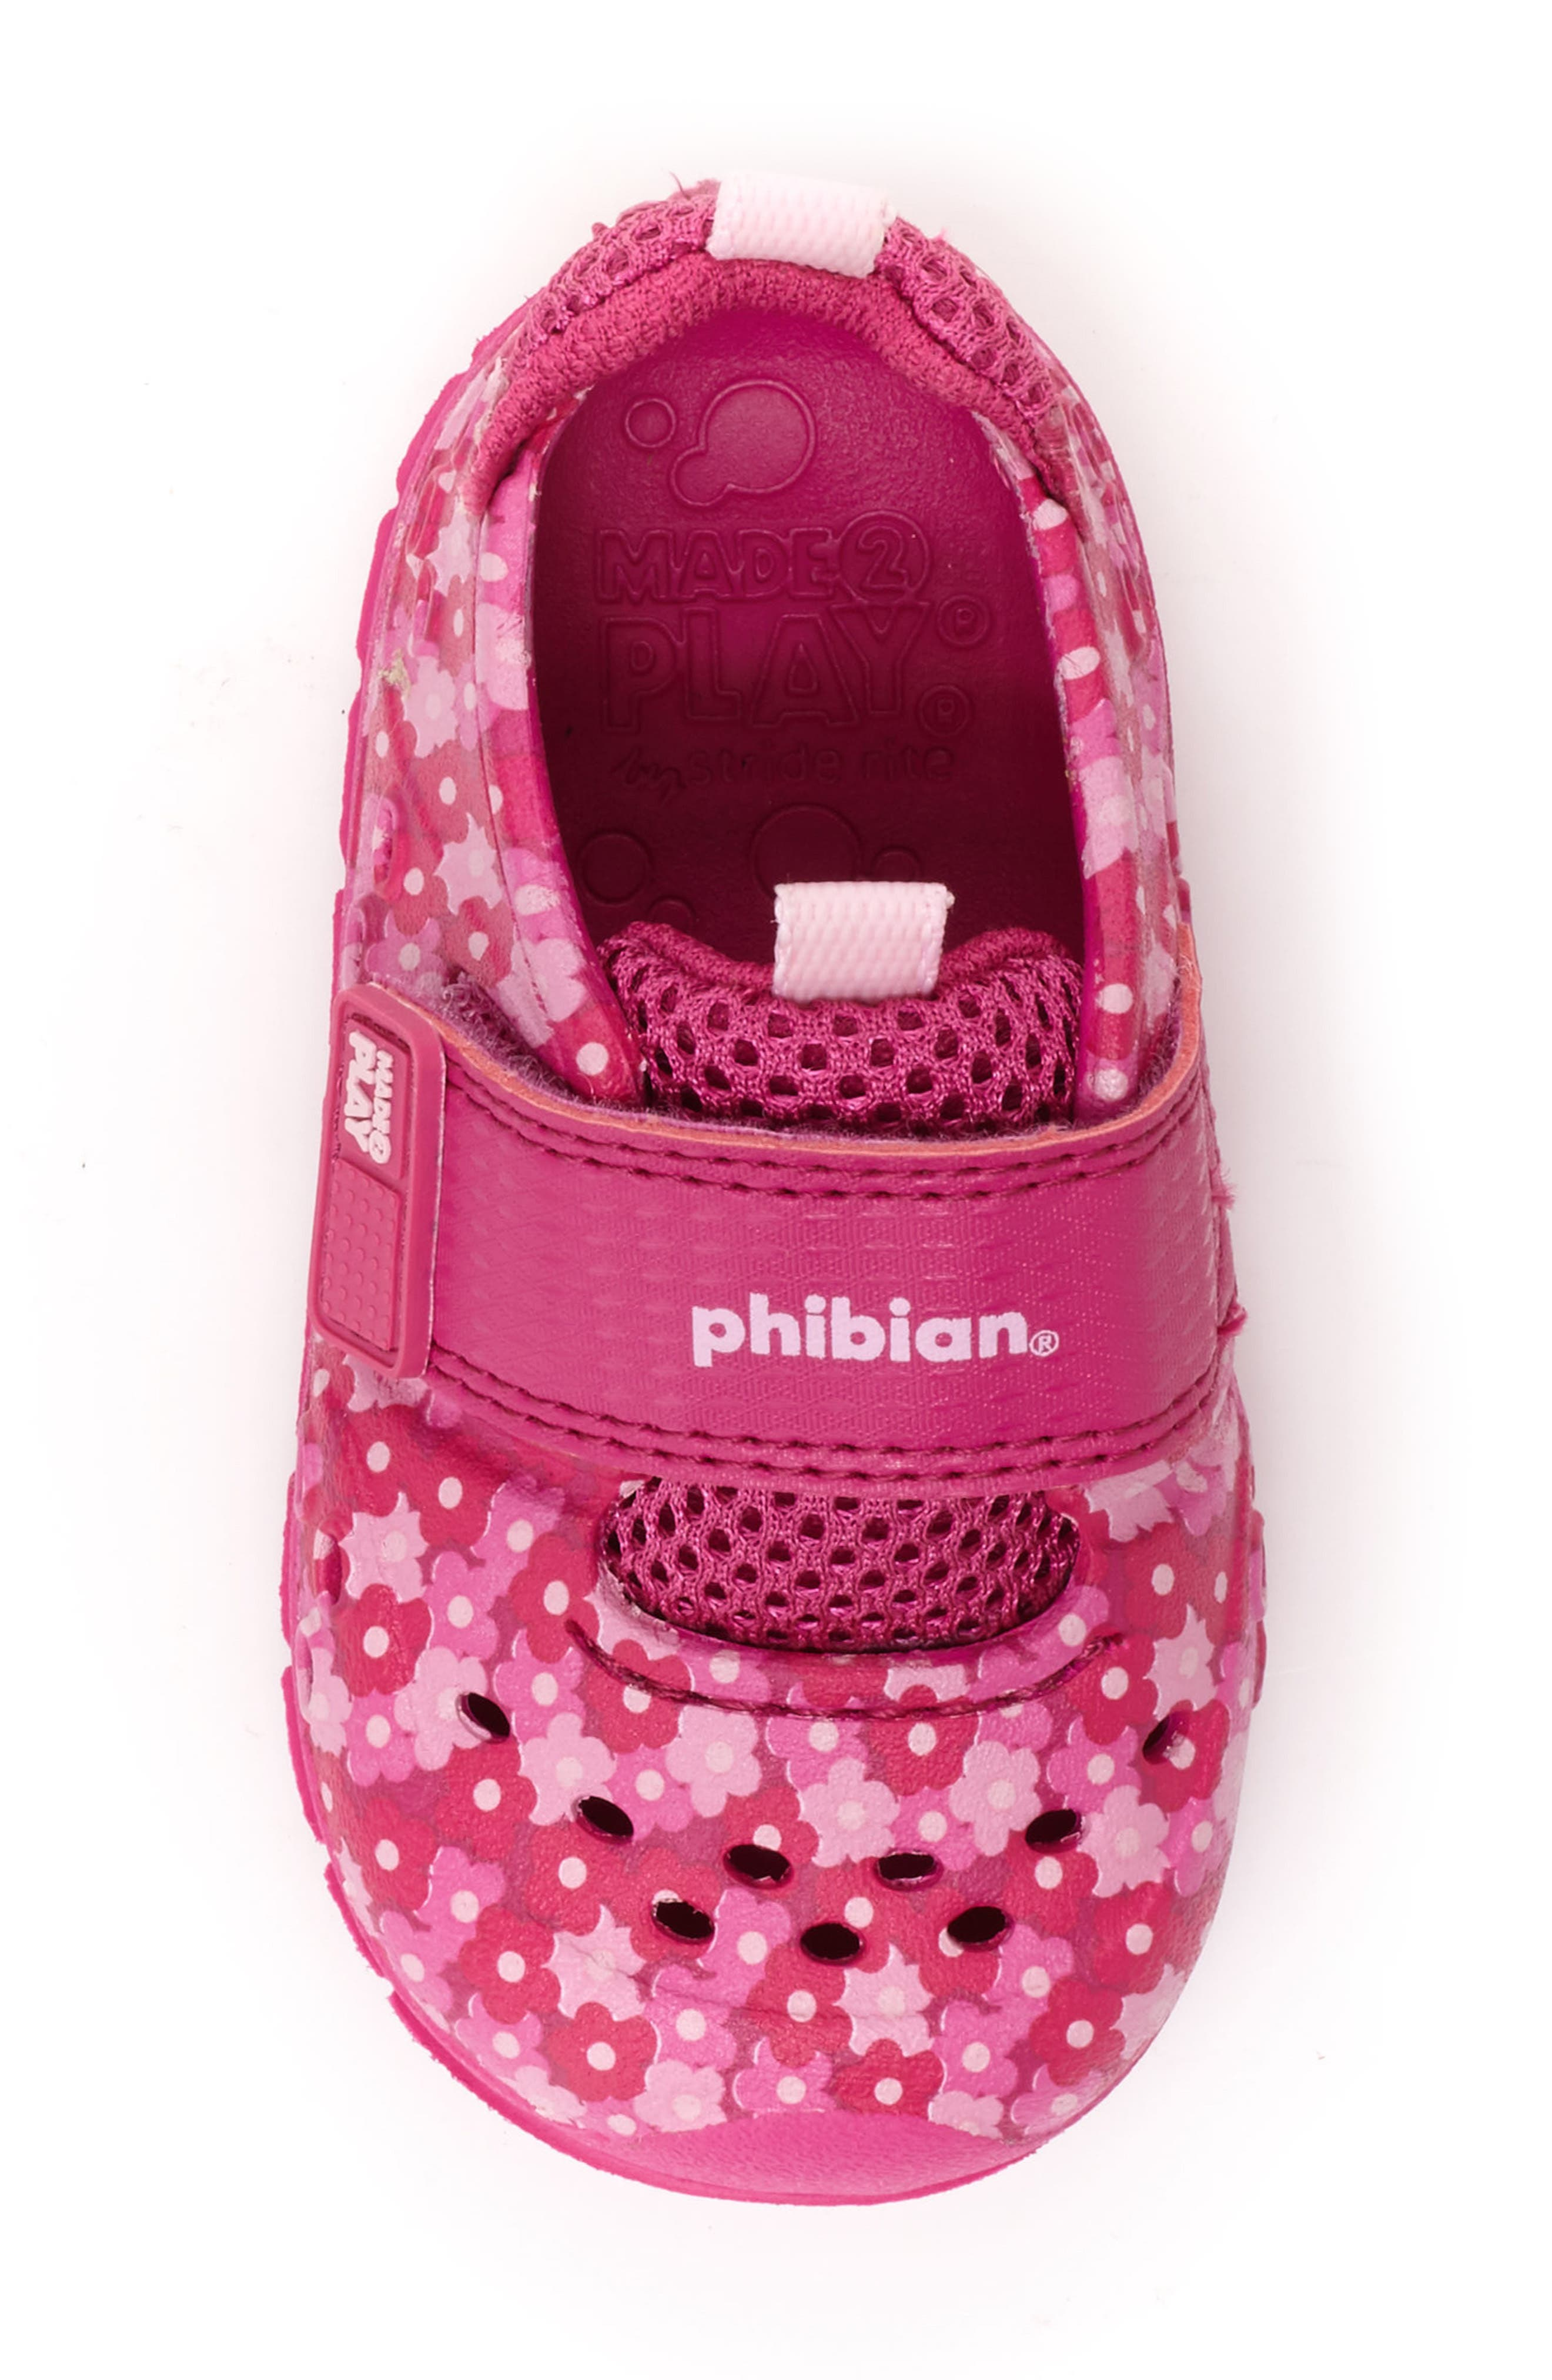 STRIDE RITE,                             Made2Play<sup>®</sup> Phibian Sneaker,                             Alternate thumbnail 5, color,                             PINK FLORAL EVA